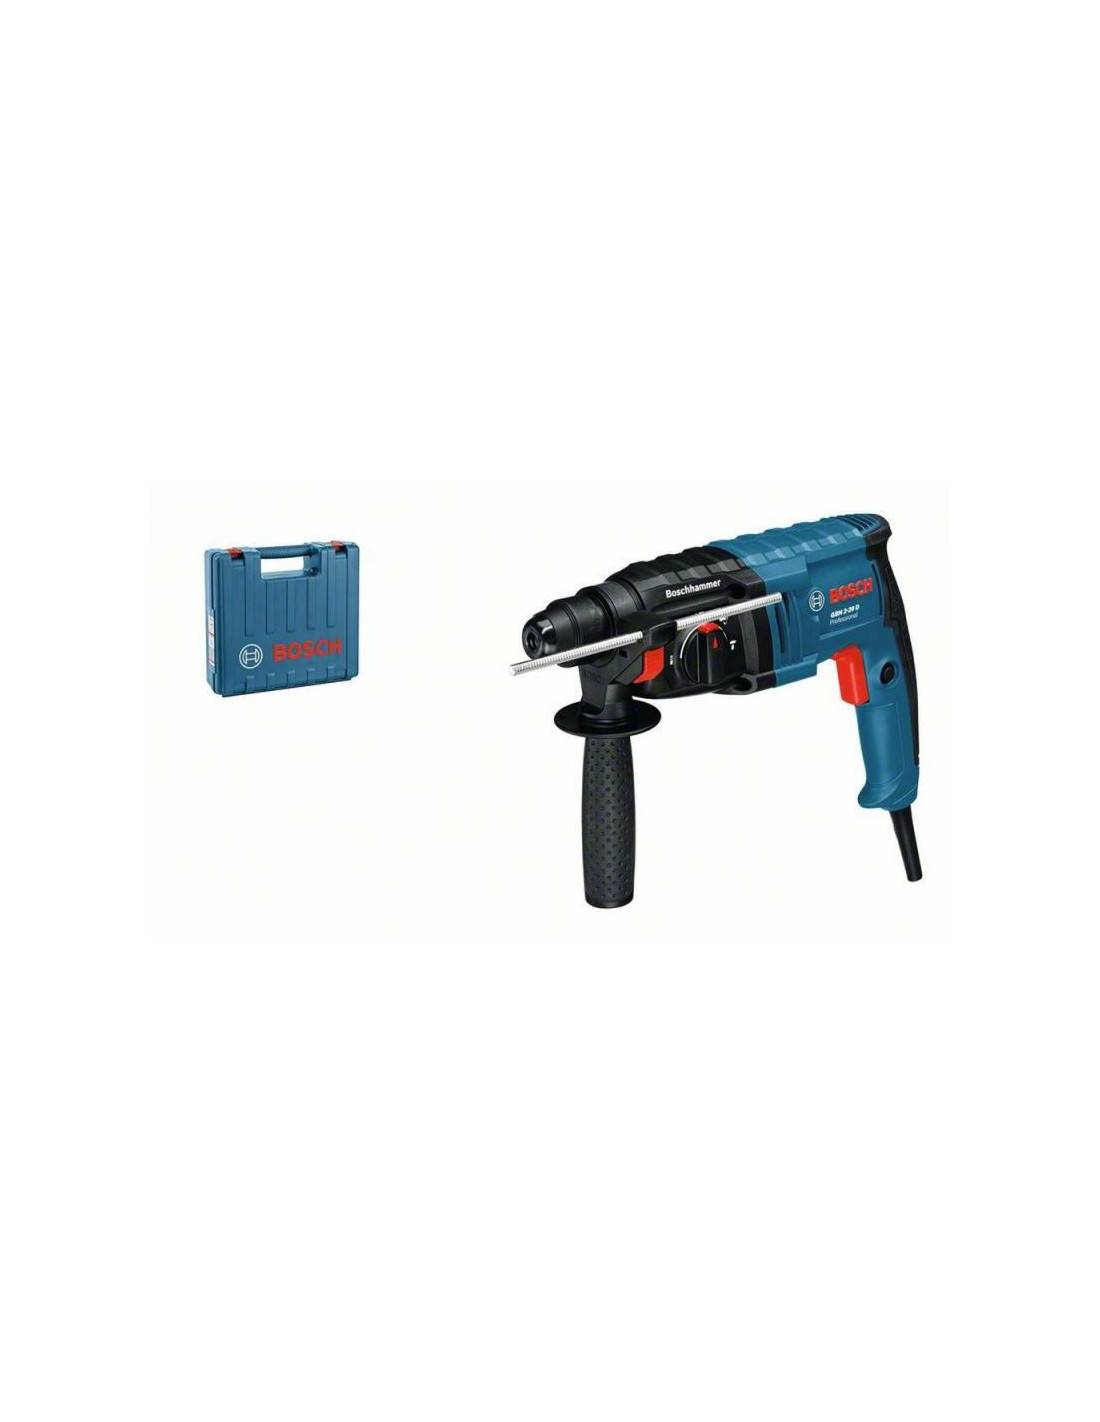 Perforateur burineur 650W SDS+ GBH 2-20 D en coffret standard - BOSCH - 061125A400